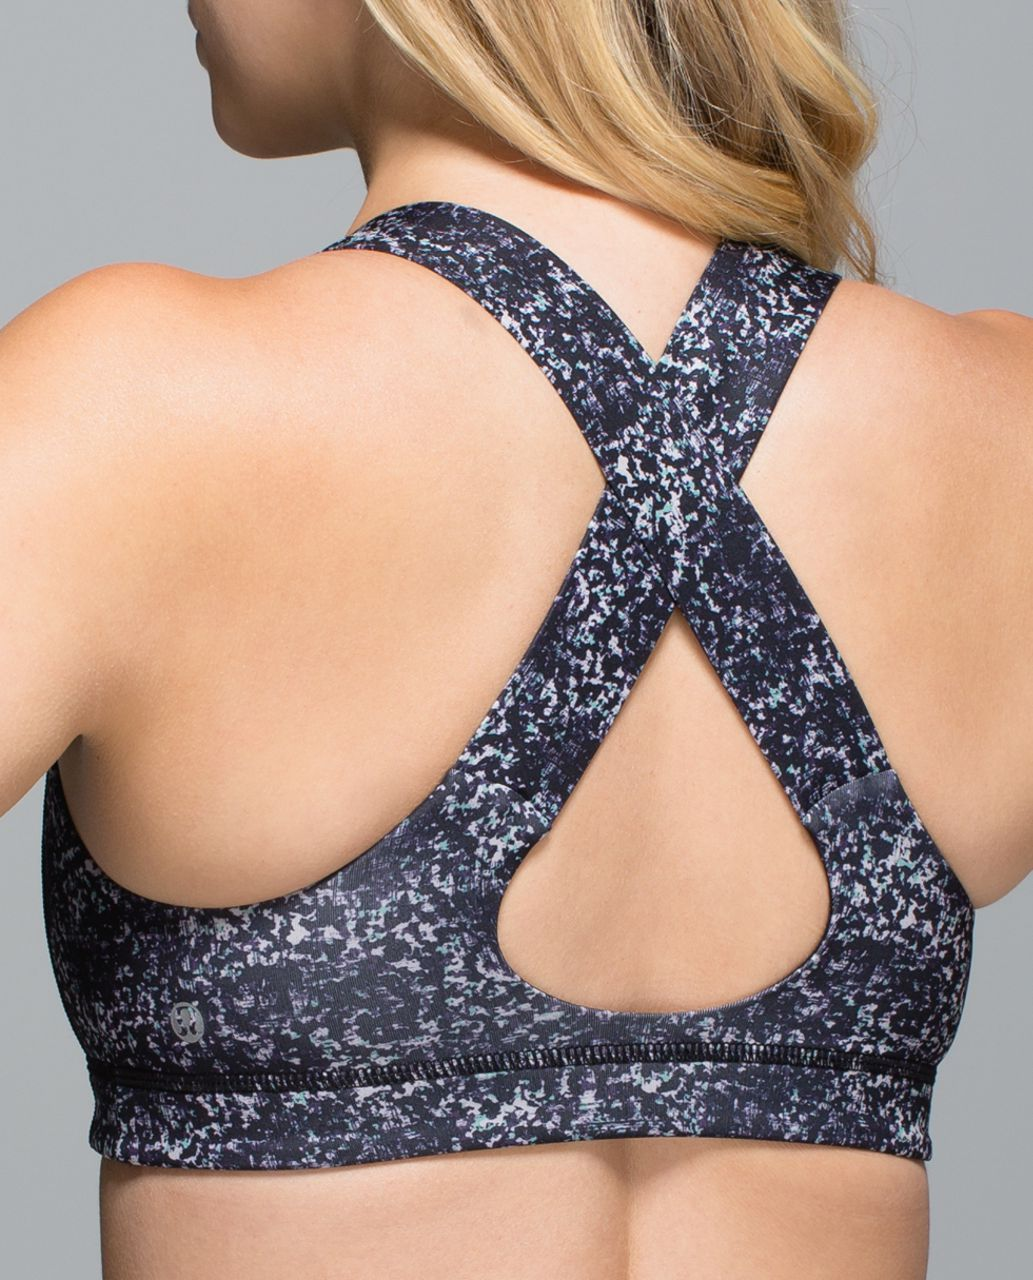 Lululemon All Sport Bra - Rocky Road Sand Dune Ground